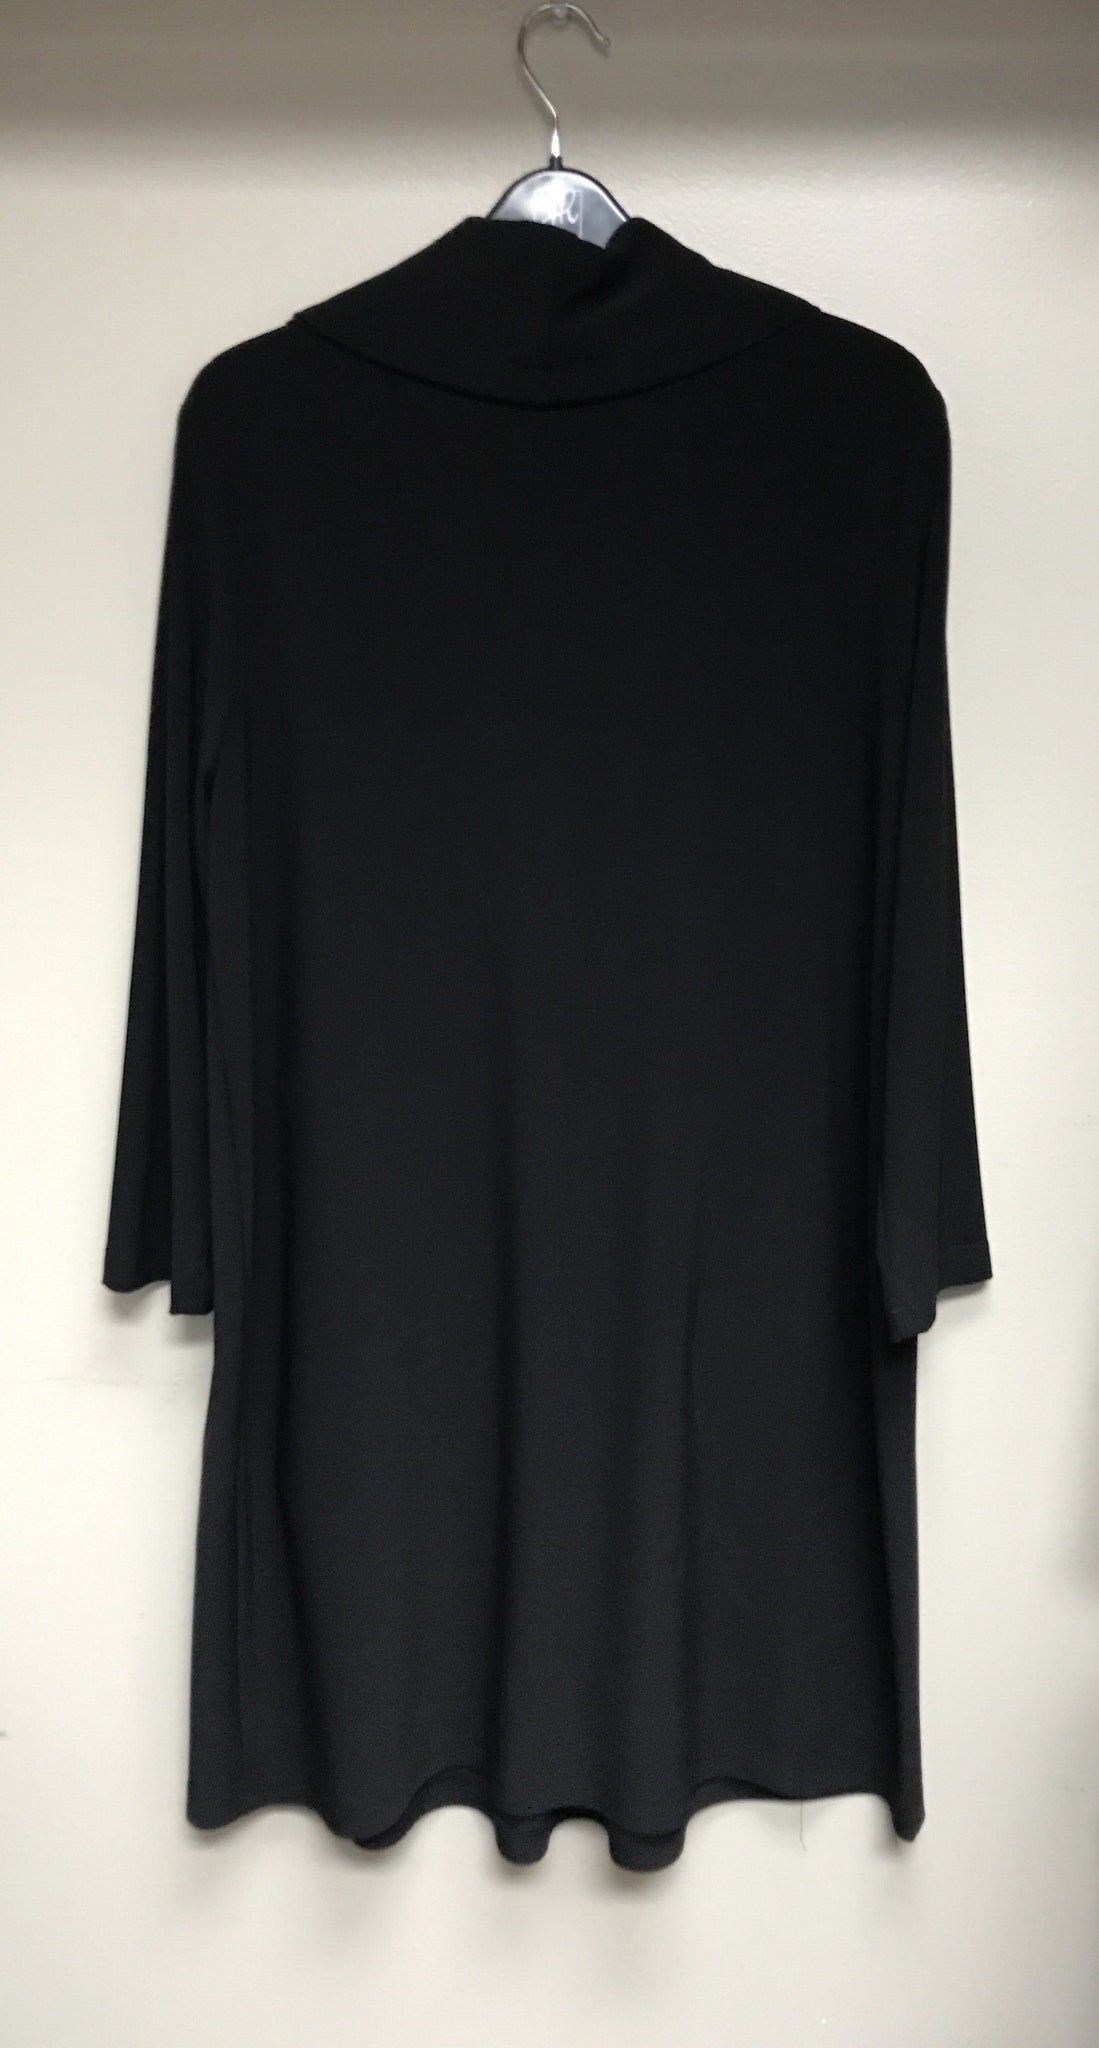 Joseph Ribkoff Tunic/Dress Black 183041